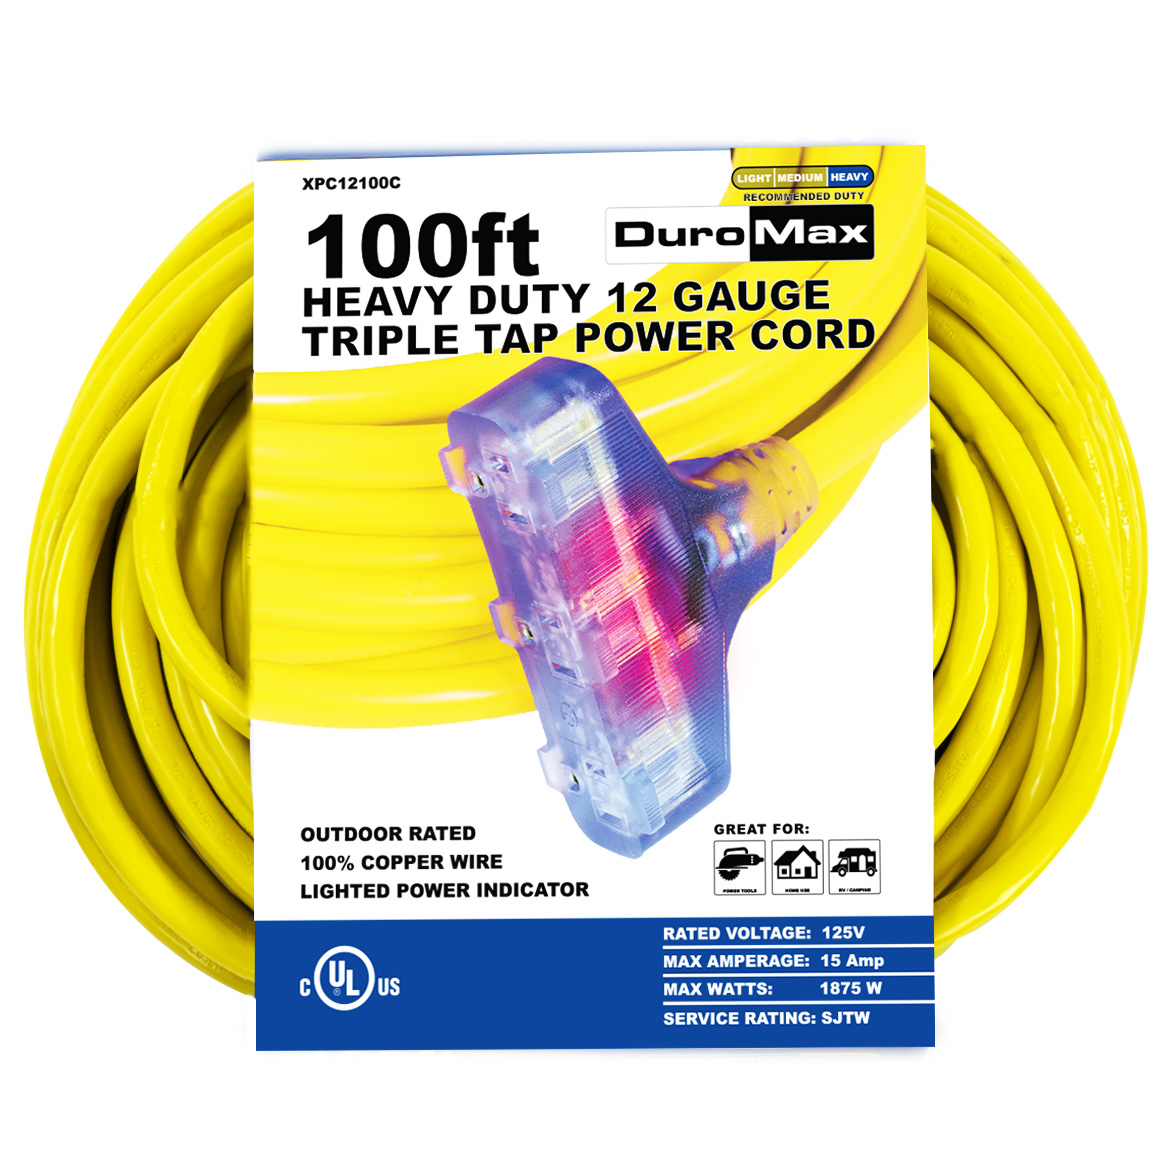 DuroMax XPC12100C 100-Foot 12 Gauge Triple Tap Extension Power Cord